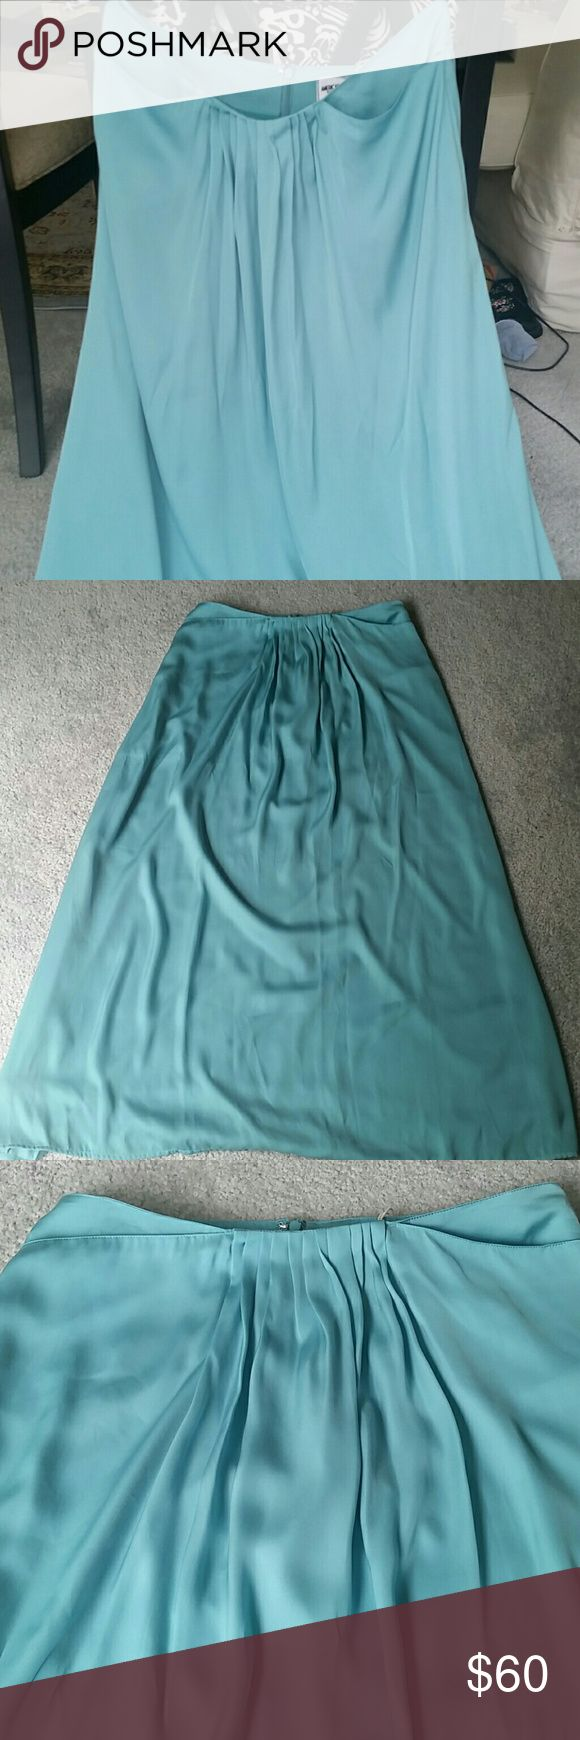 """NWT gorgeous minty turquoise maxi skirt Fully lined 100% polyester. Color may vary slightly from pictures due to computer screen variations. Tag describes it as """"mint"""". Never worn, NWT. Cute pleating at front waistline with 2 pockets. Love having pockets on my maxi skirts!!! American Retro Skirts Maxi"""